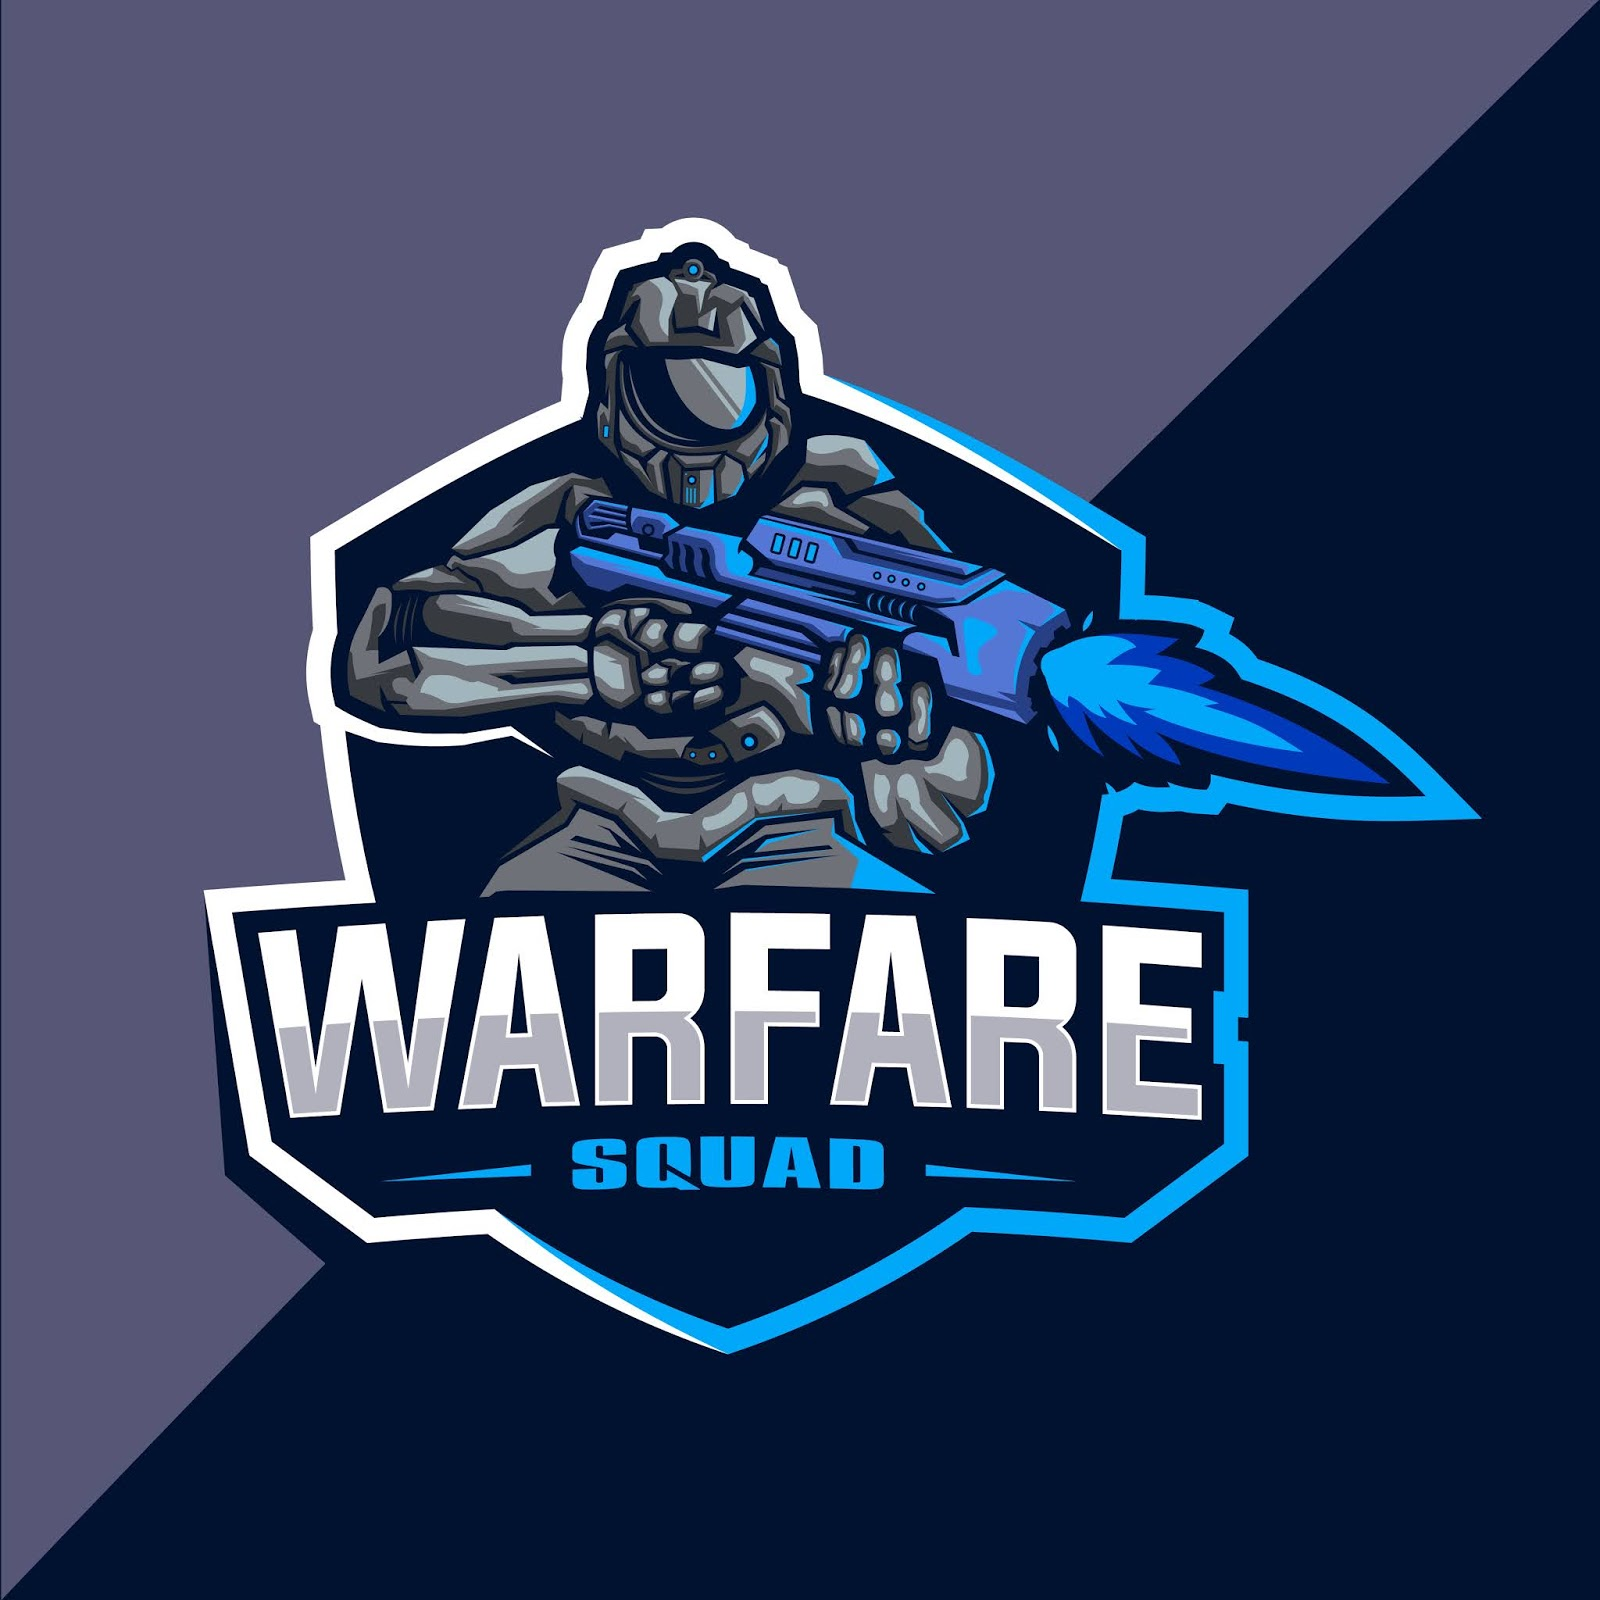 Warfare Squad Esport Logo Design Free Download Vector CDR, AI, EPS and PNG Formats